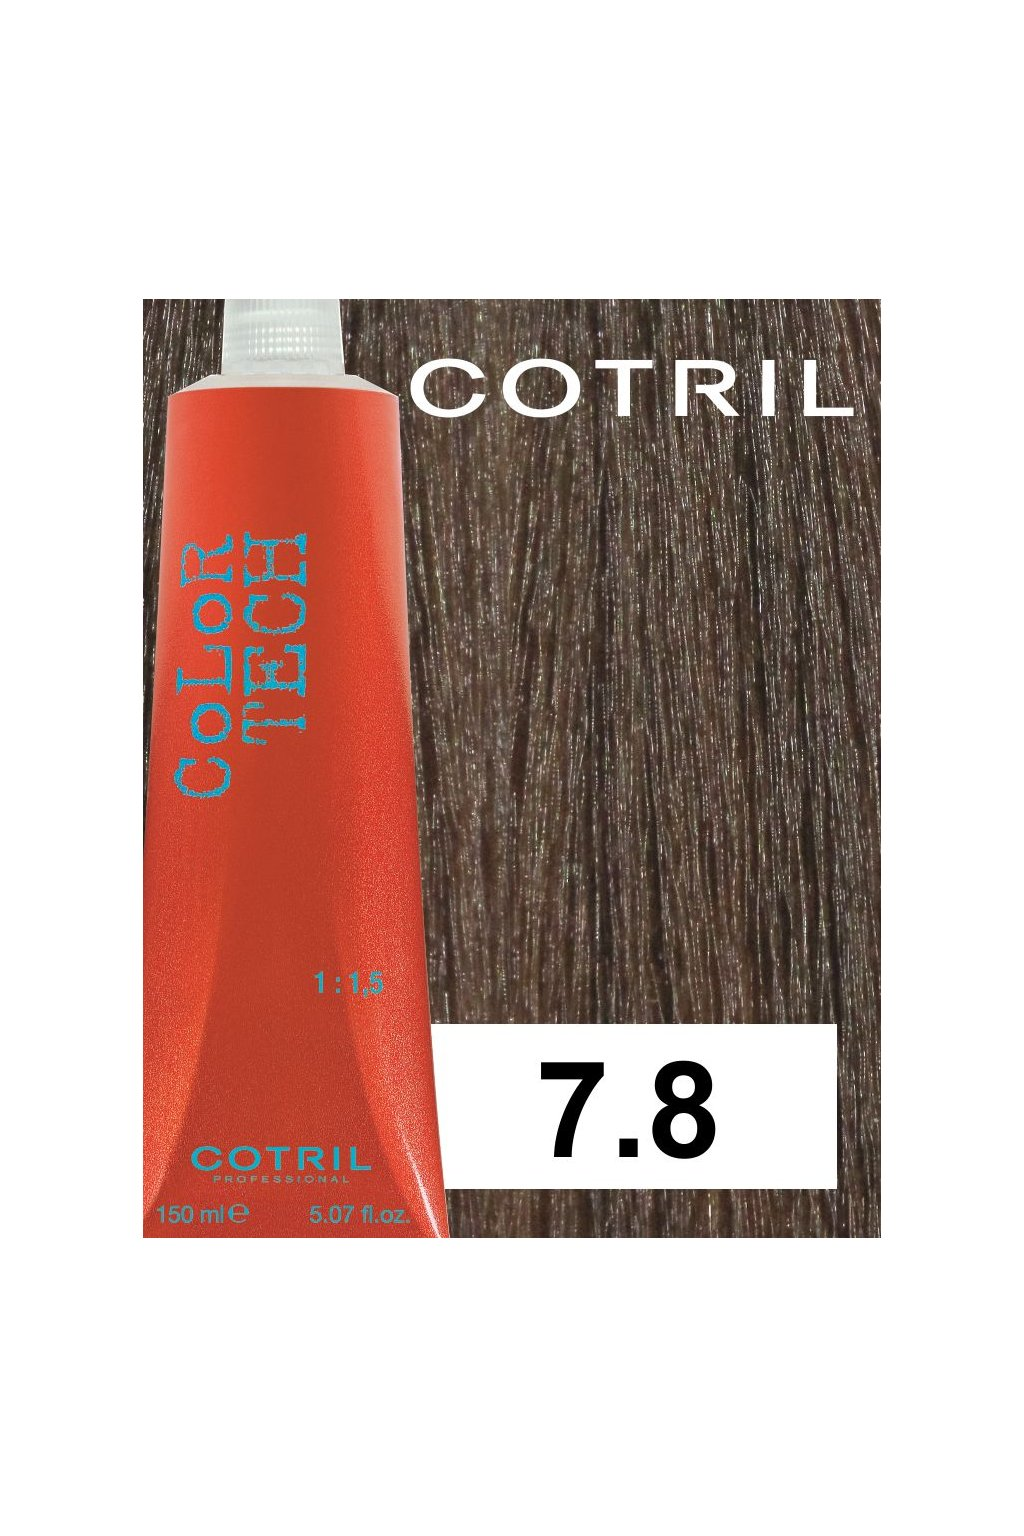 7 8 ct cotril